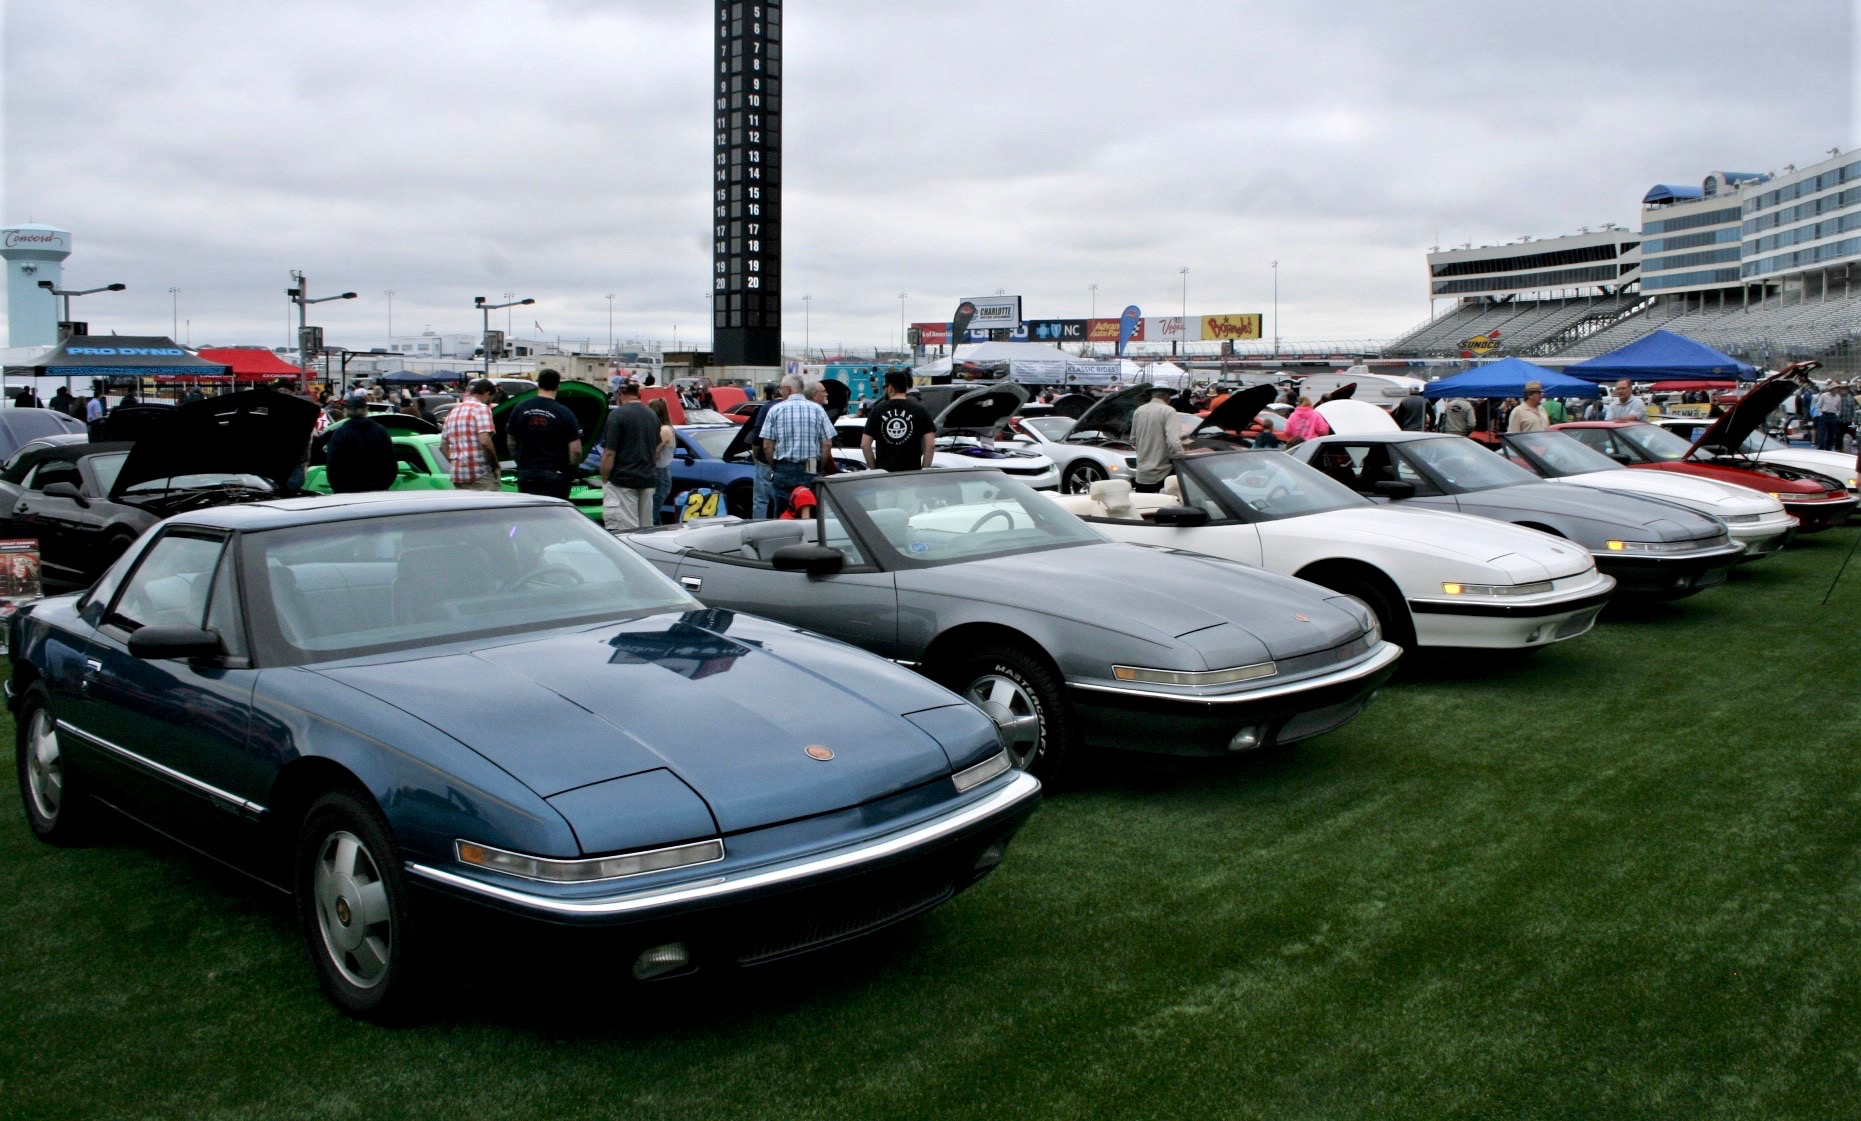 Charlotte AutoFair, This Hornets Nest stirs up a top-rate collector car weekend, ClassicCars.com Journal